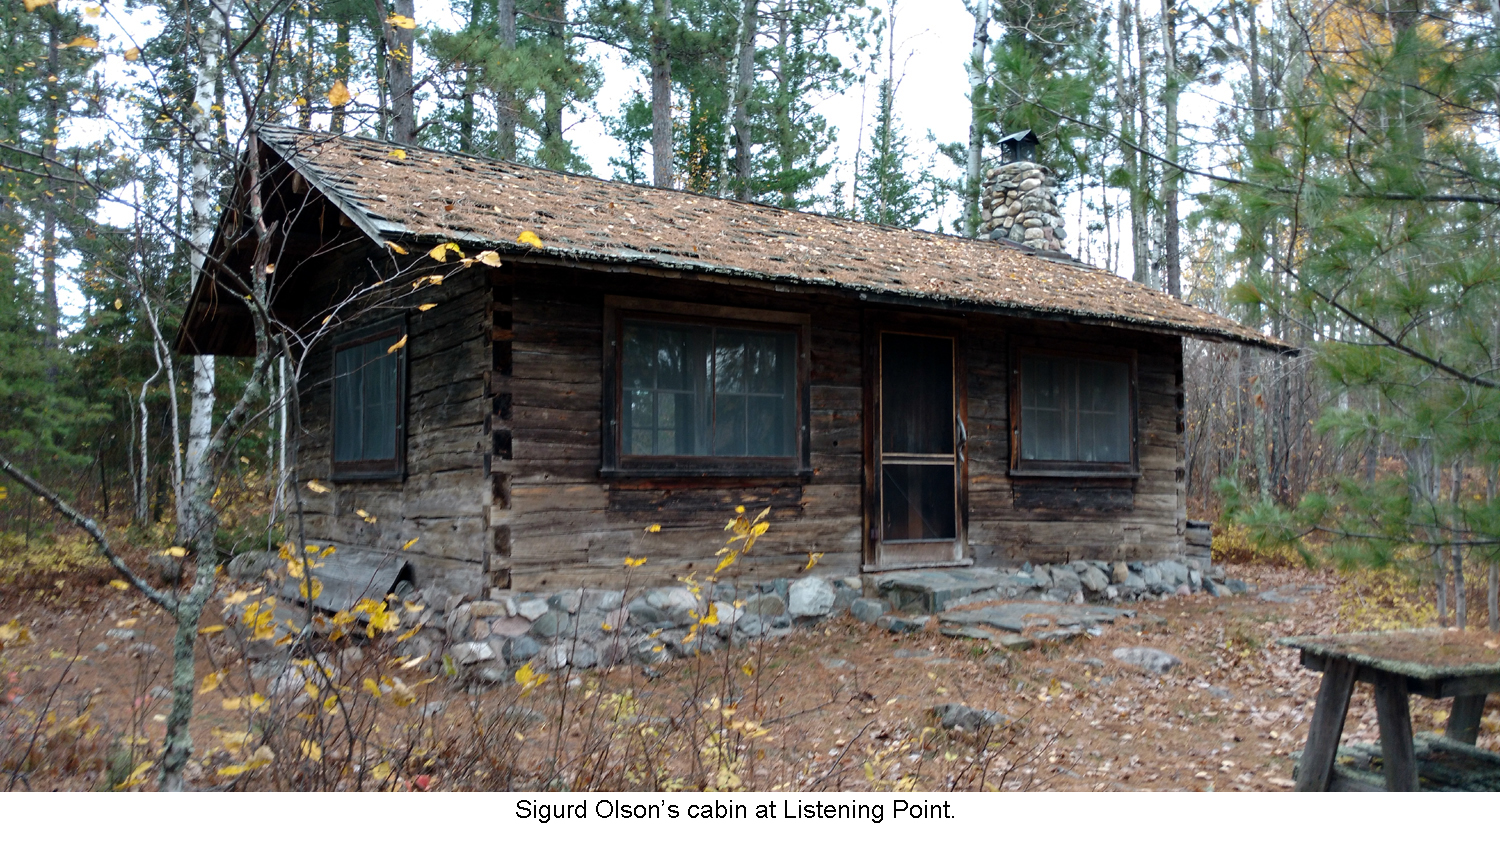 Sigurd Olson's cabin at Listening Point